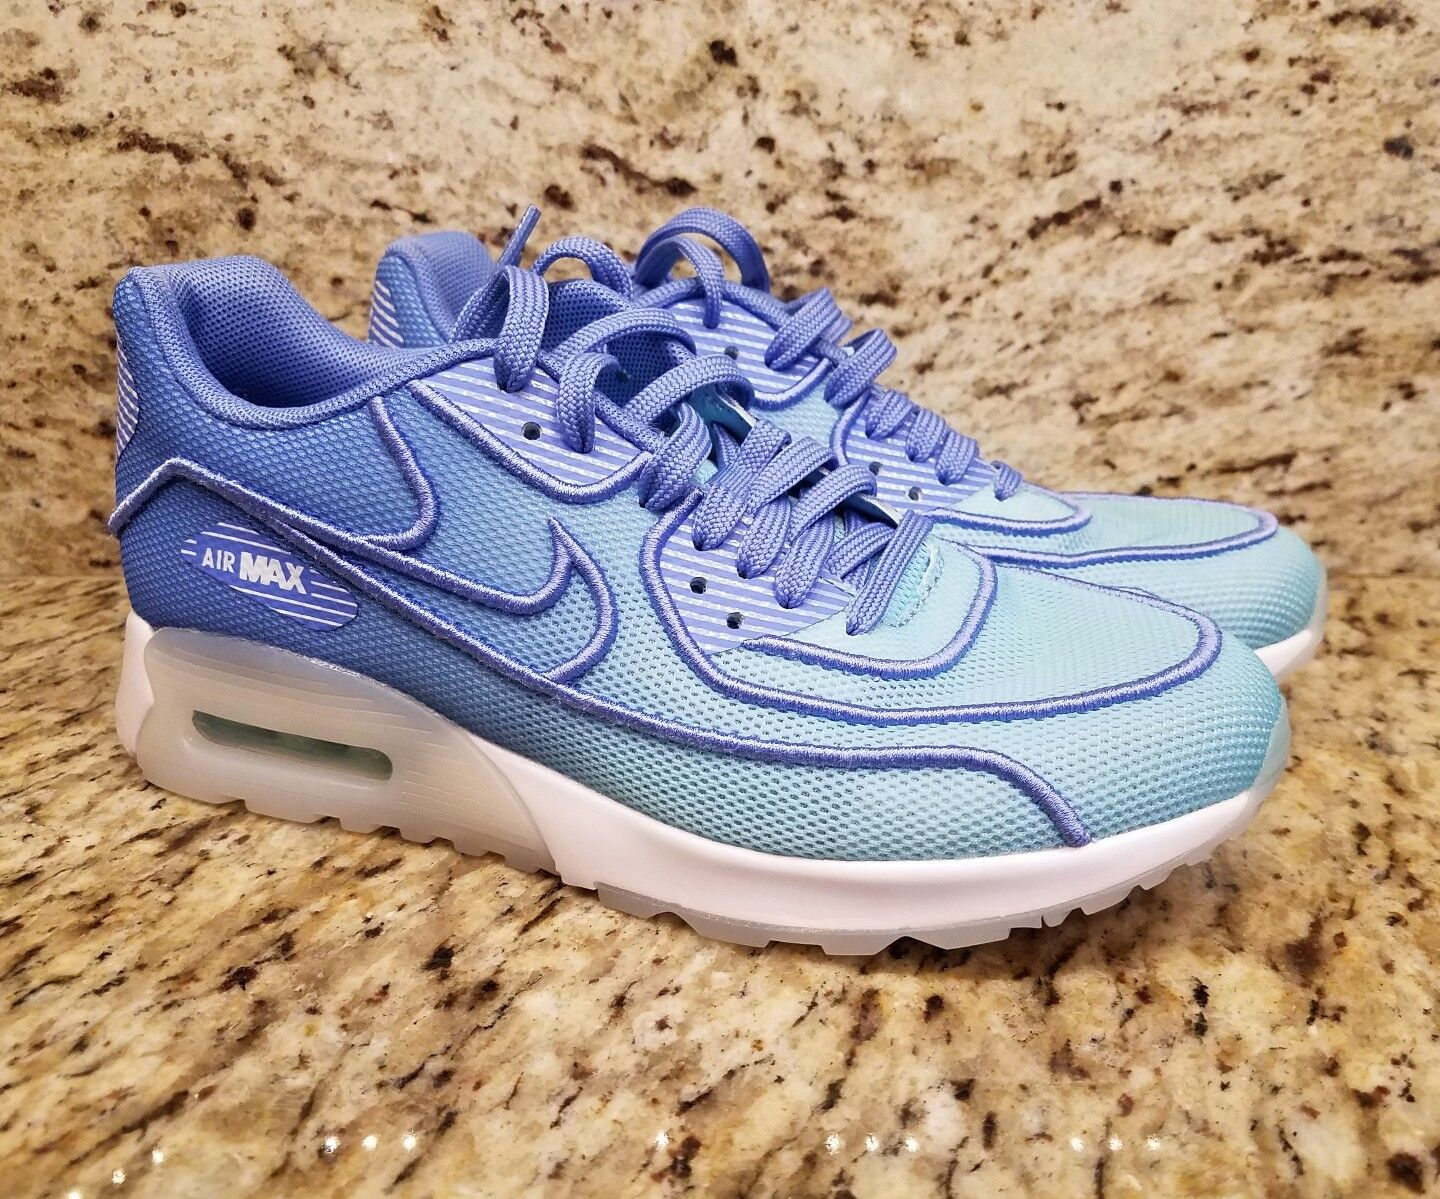 WNMS Nike Air Max 90 Ultra 2.0 BR Polarized bluee  White 917523 400 SZ 6.5 womens